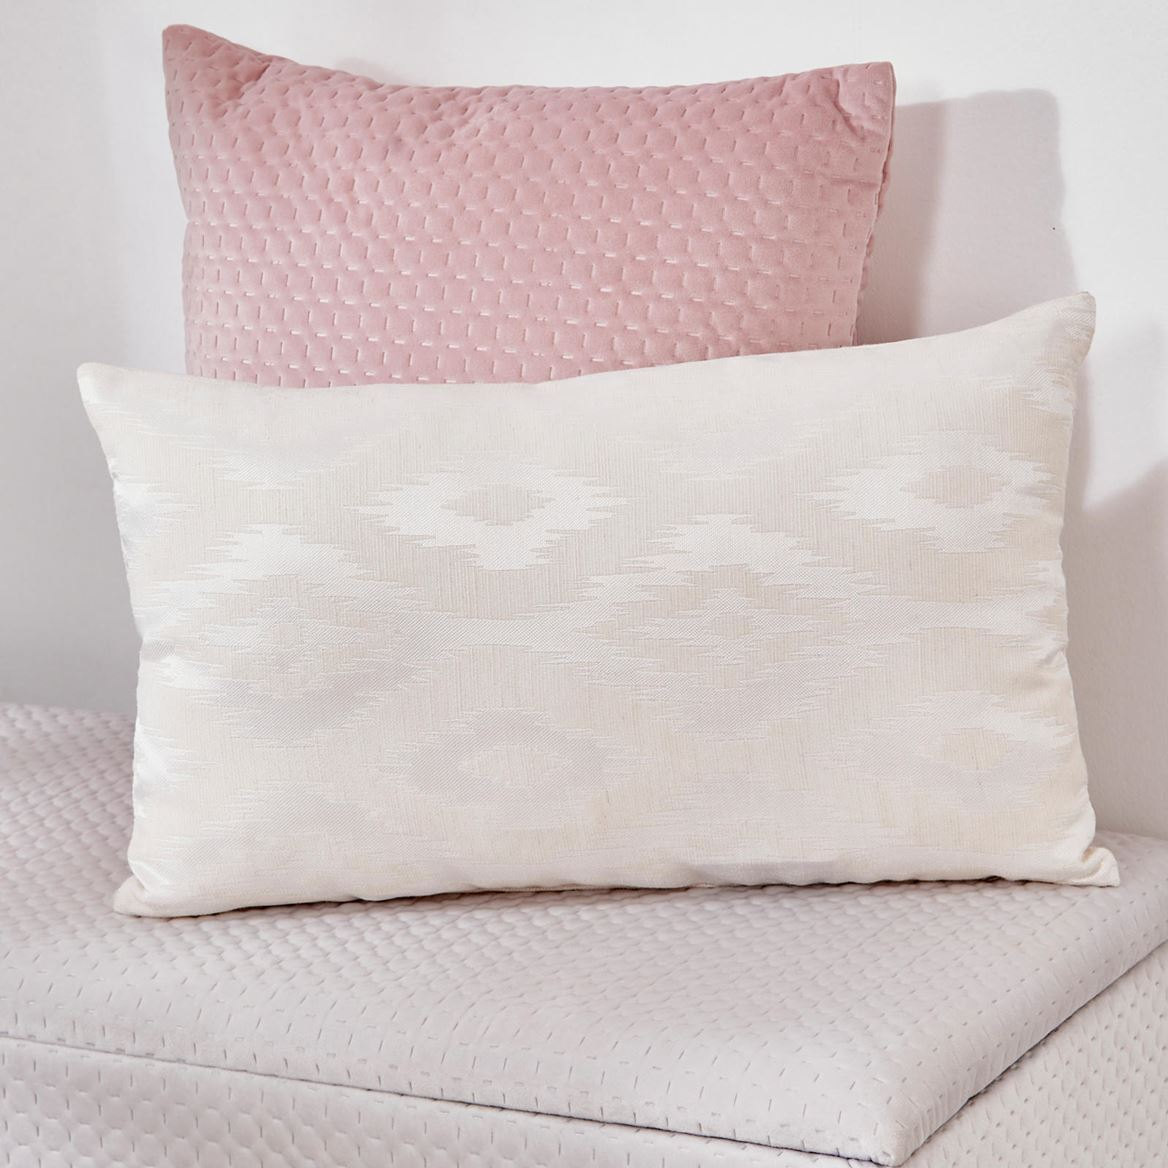 WYTTE Coussin blanc Larg. 30 x Long. 50 cm_wytte-coussin-blanc-larg--30-x-long--50-cm